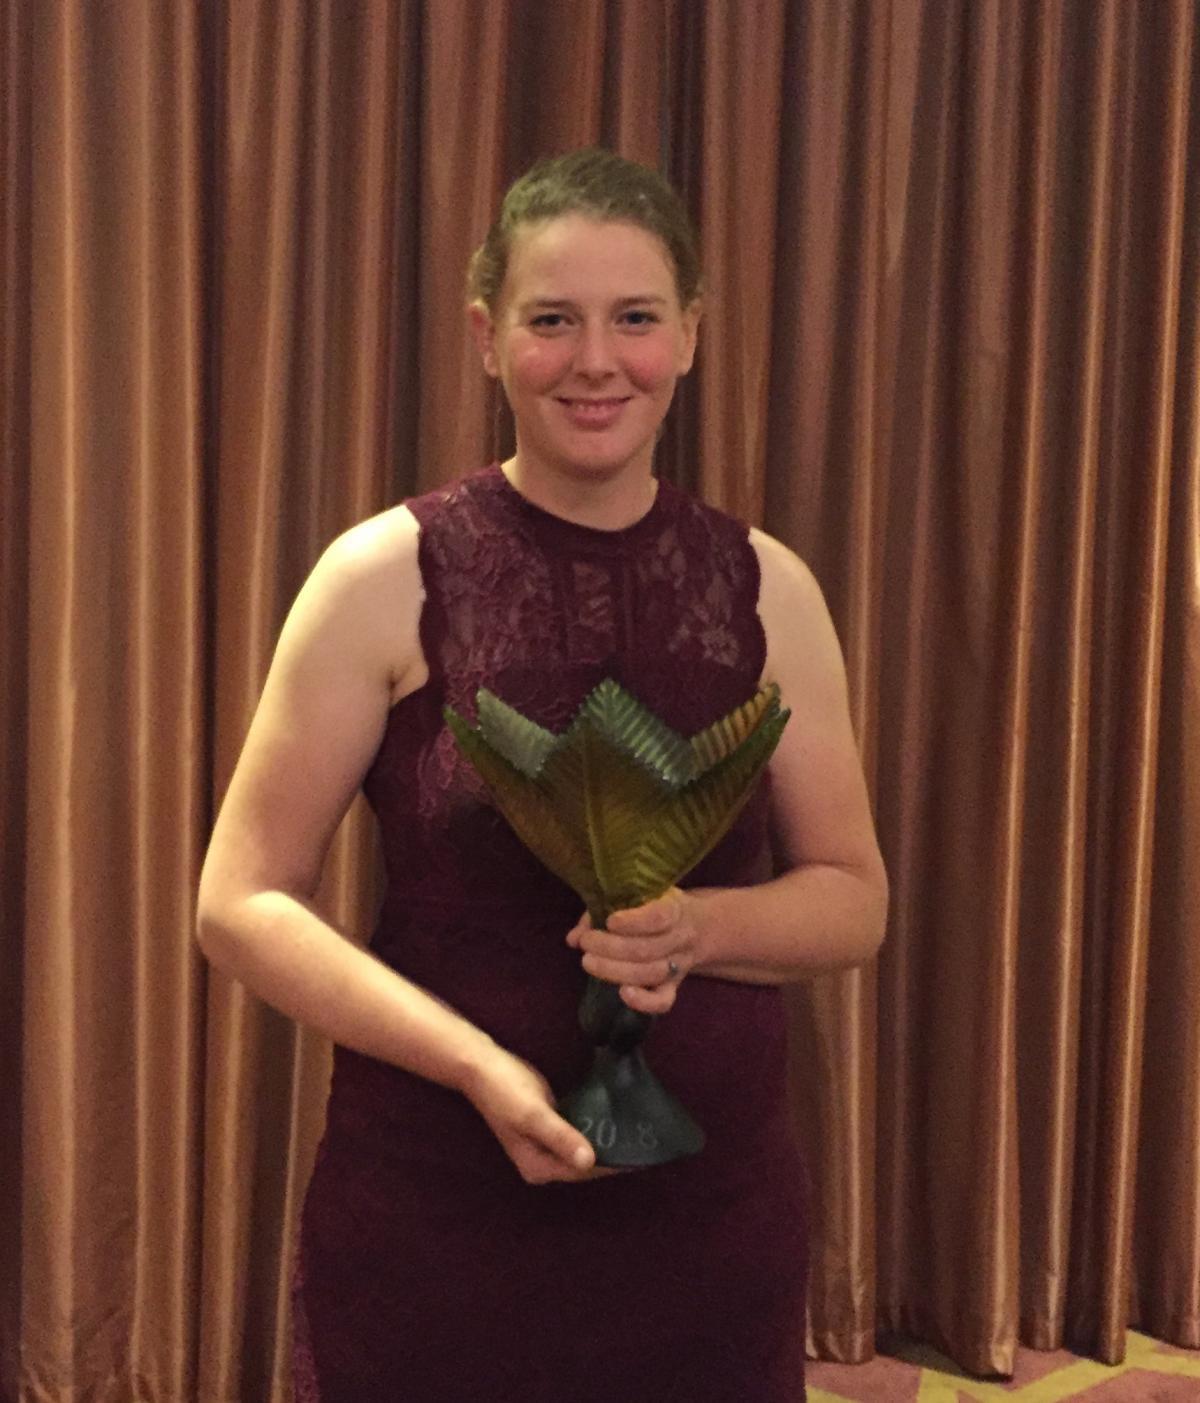 Central Otago woman takes horticulture title